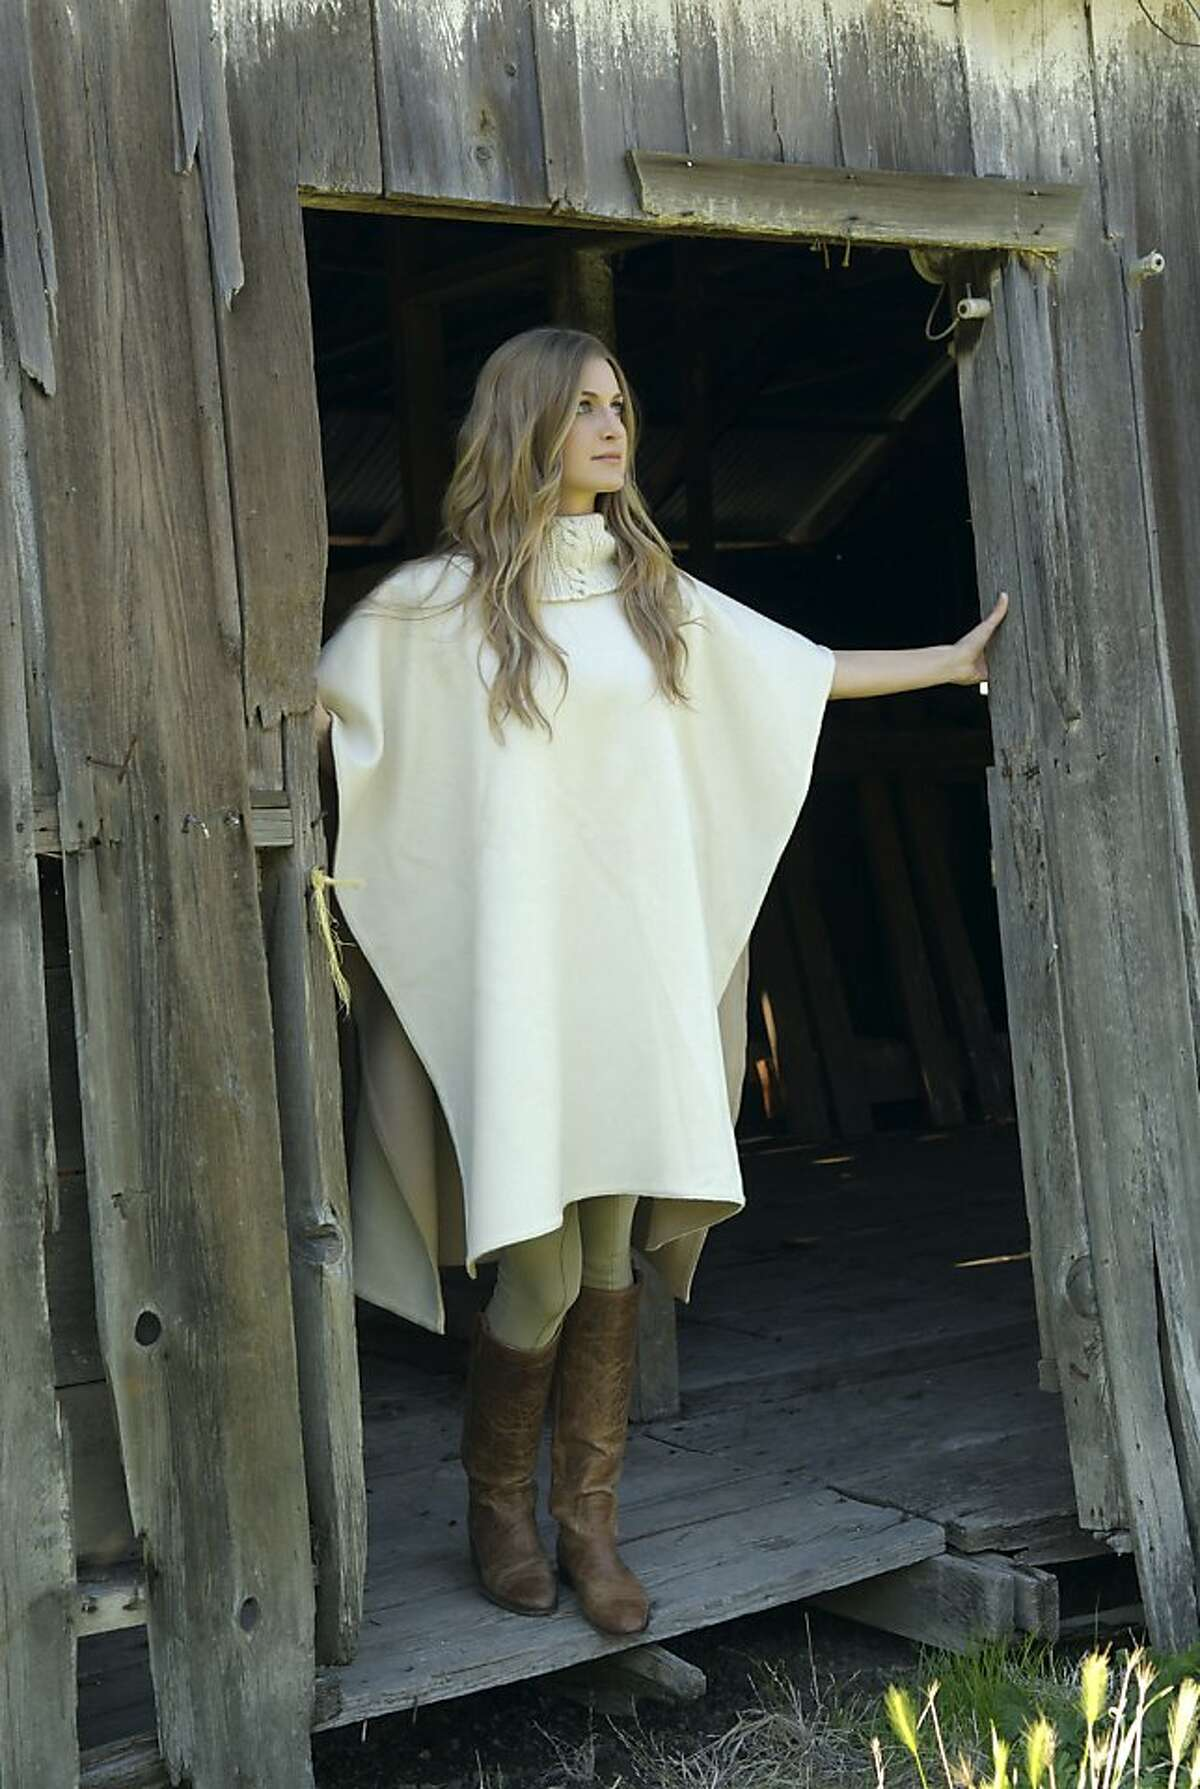 Mill Valley resident Elizabeth Goodwin Welborn has introduced a line of ponchos, throws and purses marketed under the brand name Stick & Ball. Welborn fell in the love with the casual side of the sport while working in Argentina in the late 1990s.